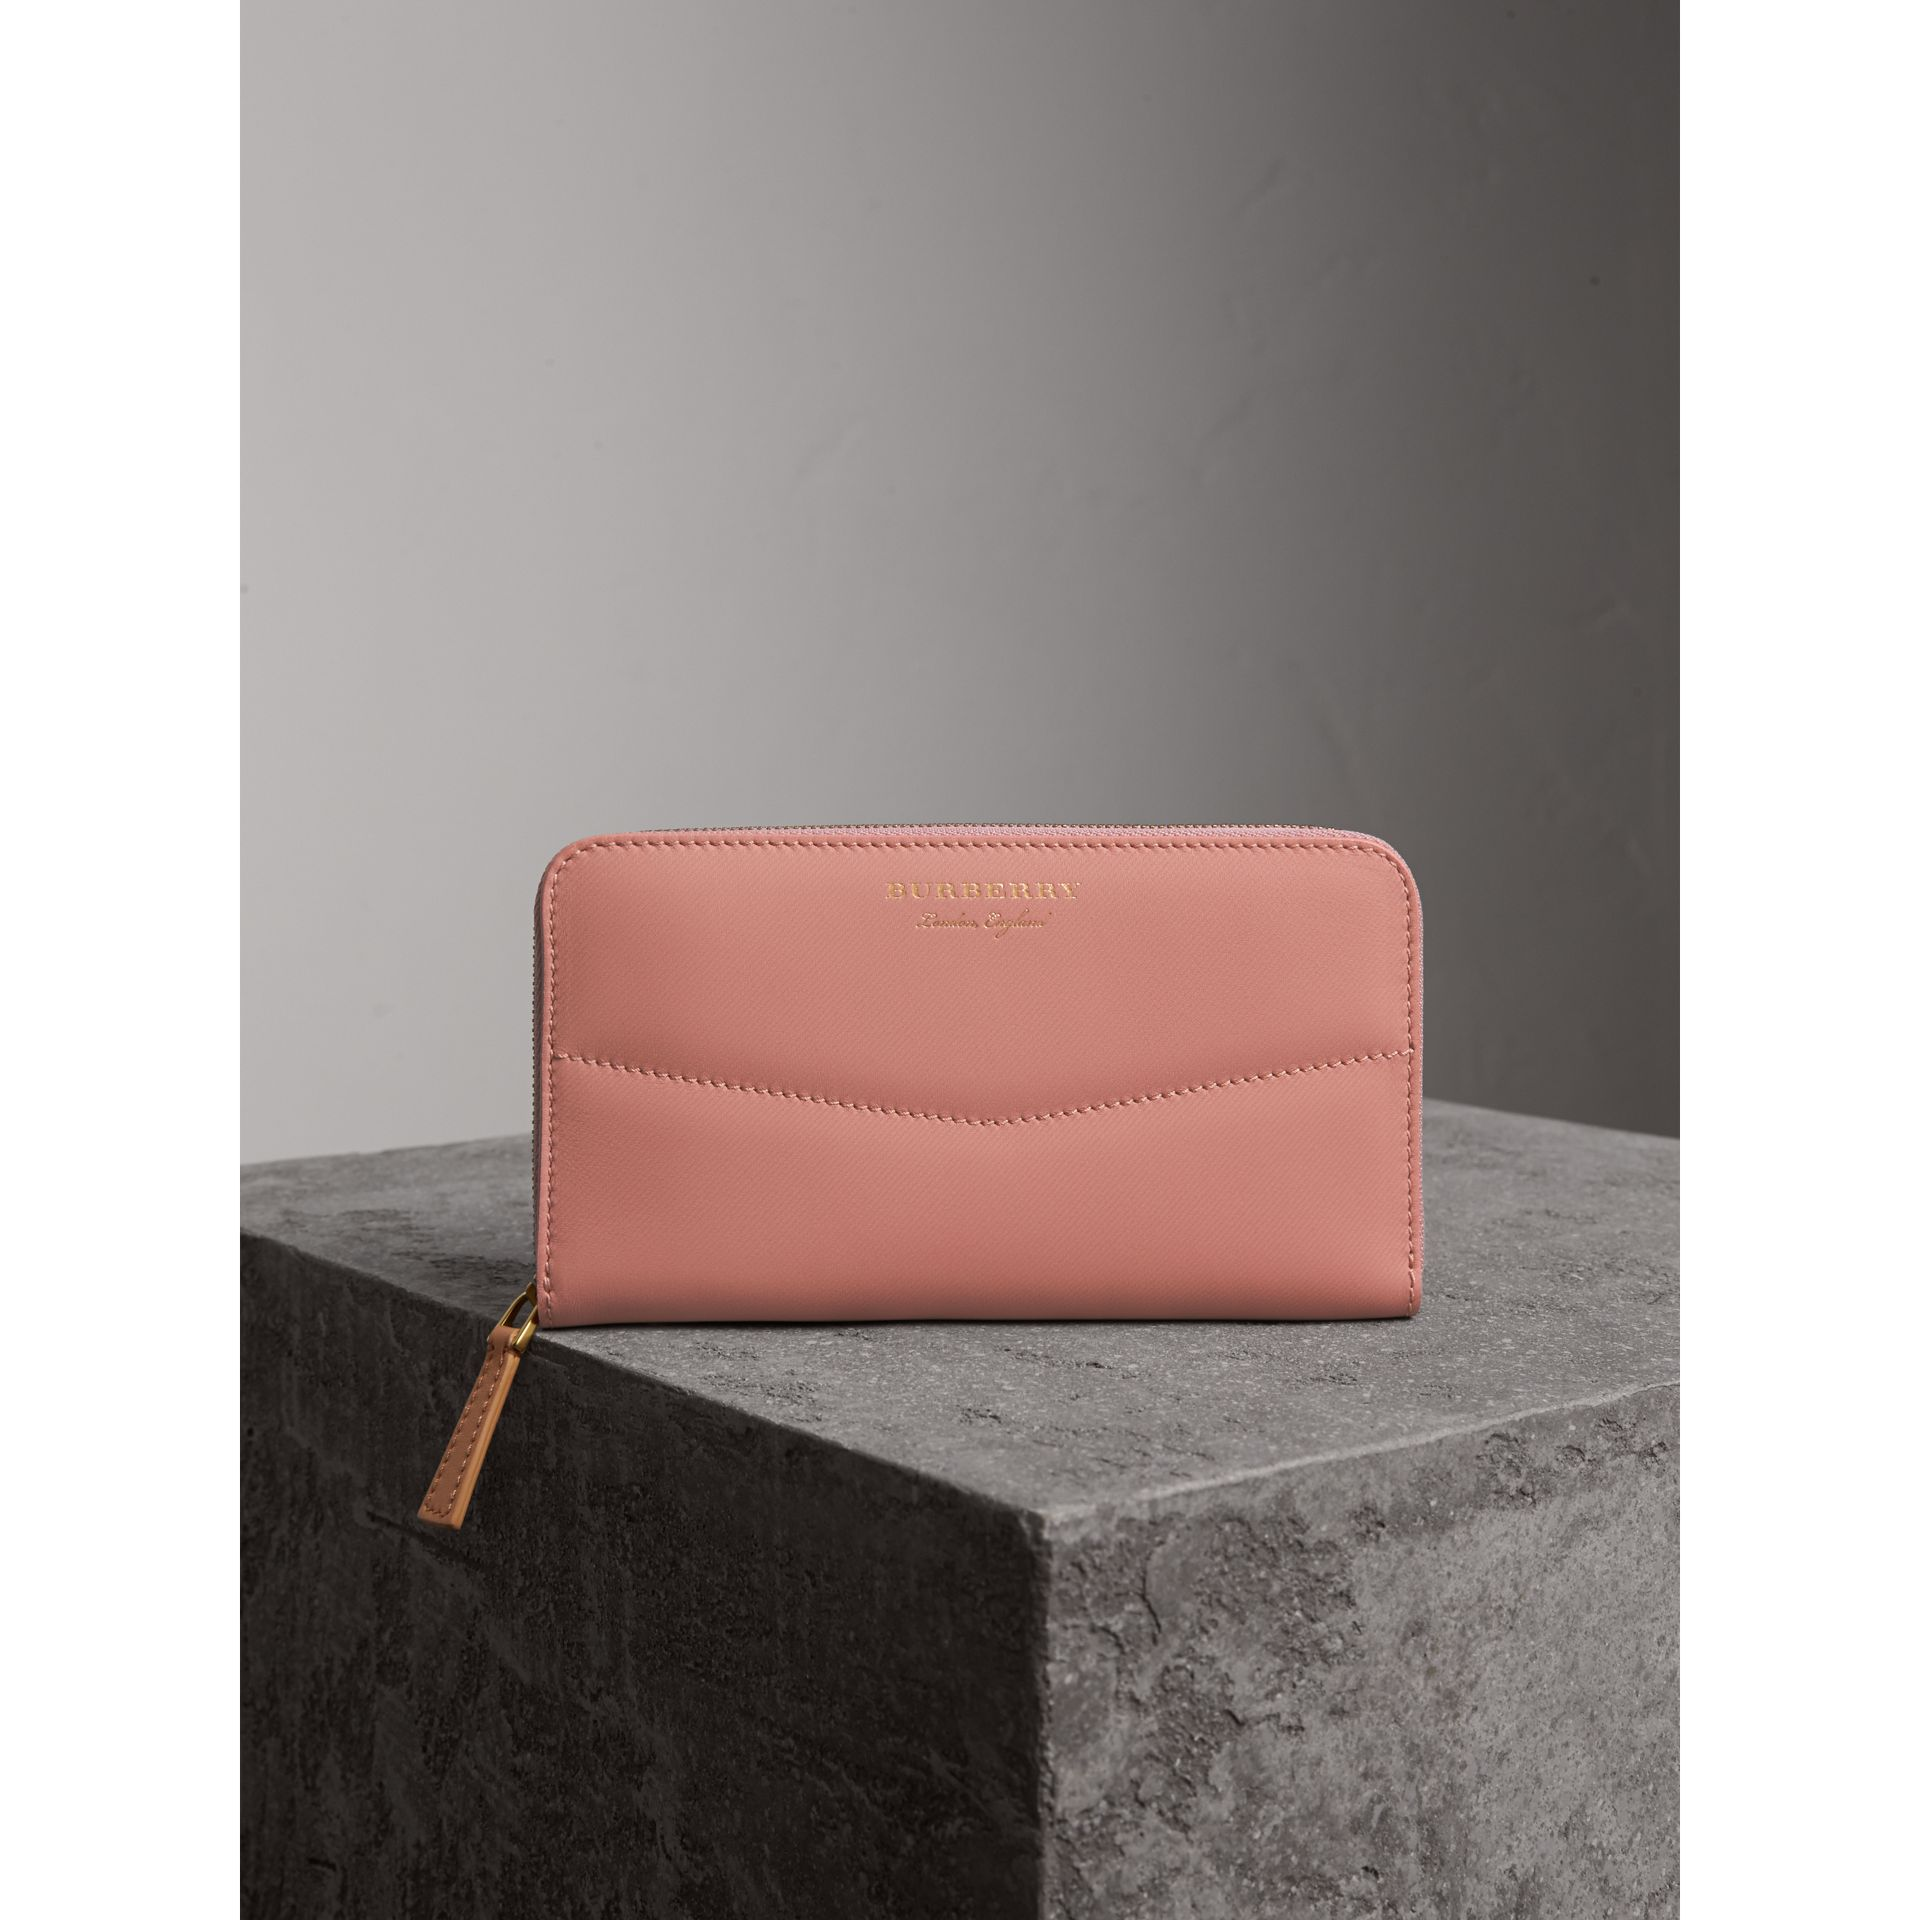 Two-tone Trench Leather Ziparound Wallet in Ash Rose/pale Clementine - Women | Burberry Canada - gallery image 5